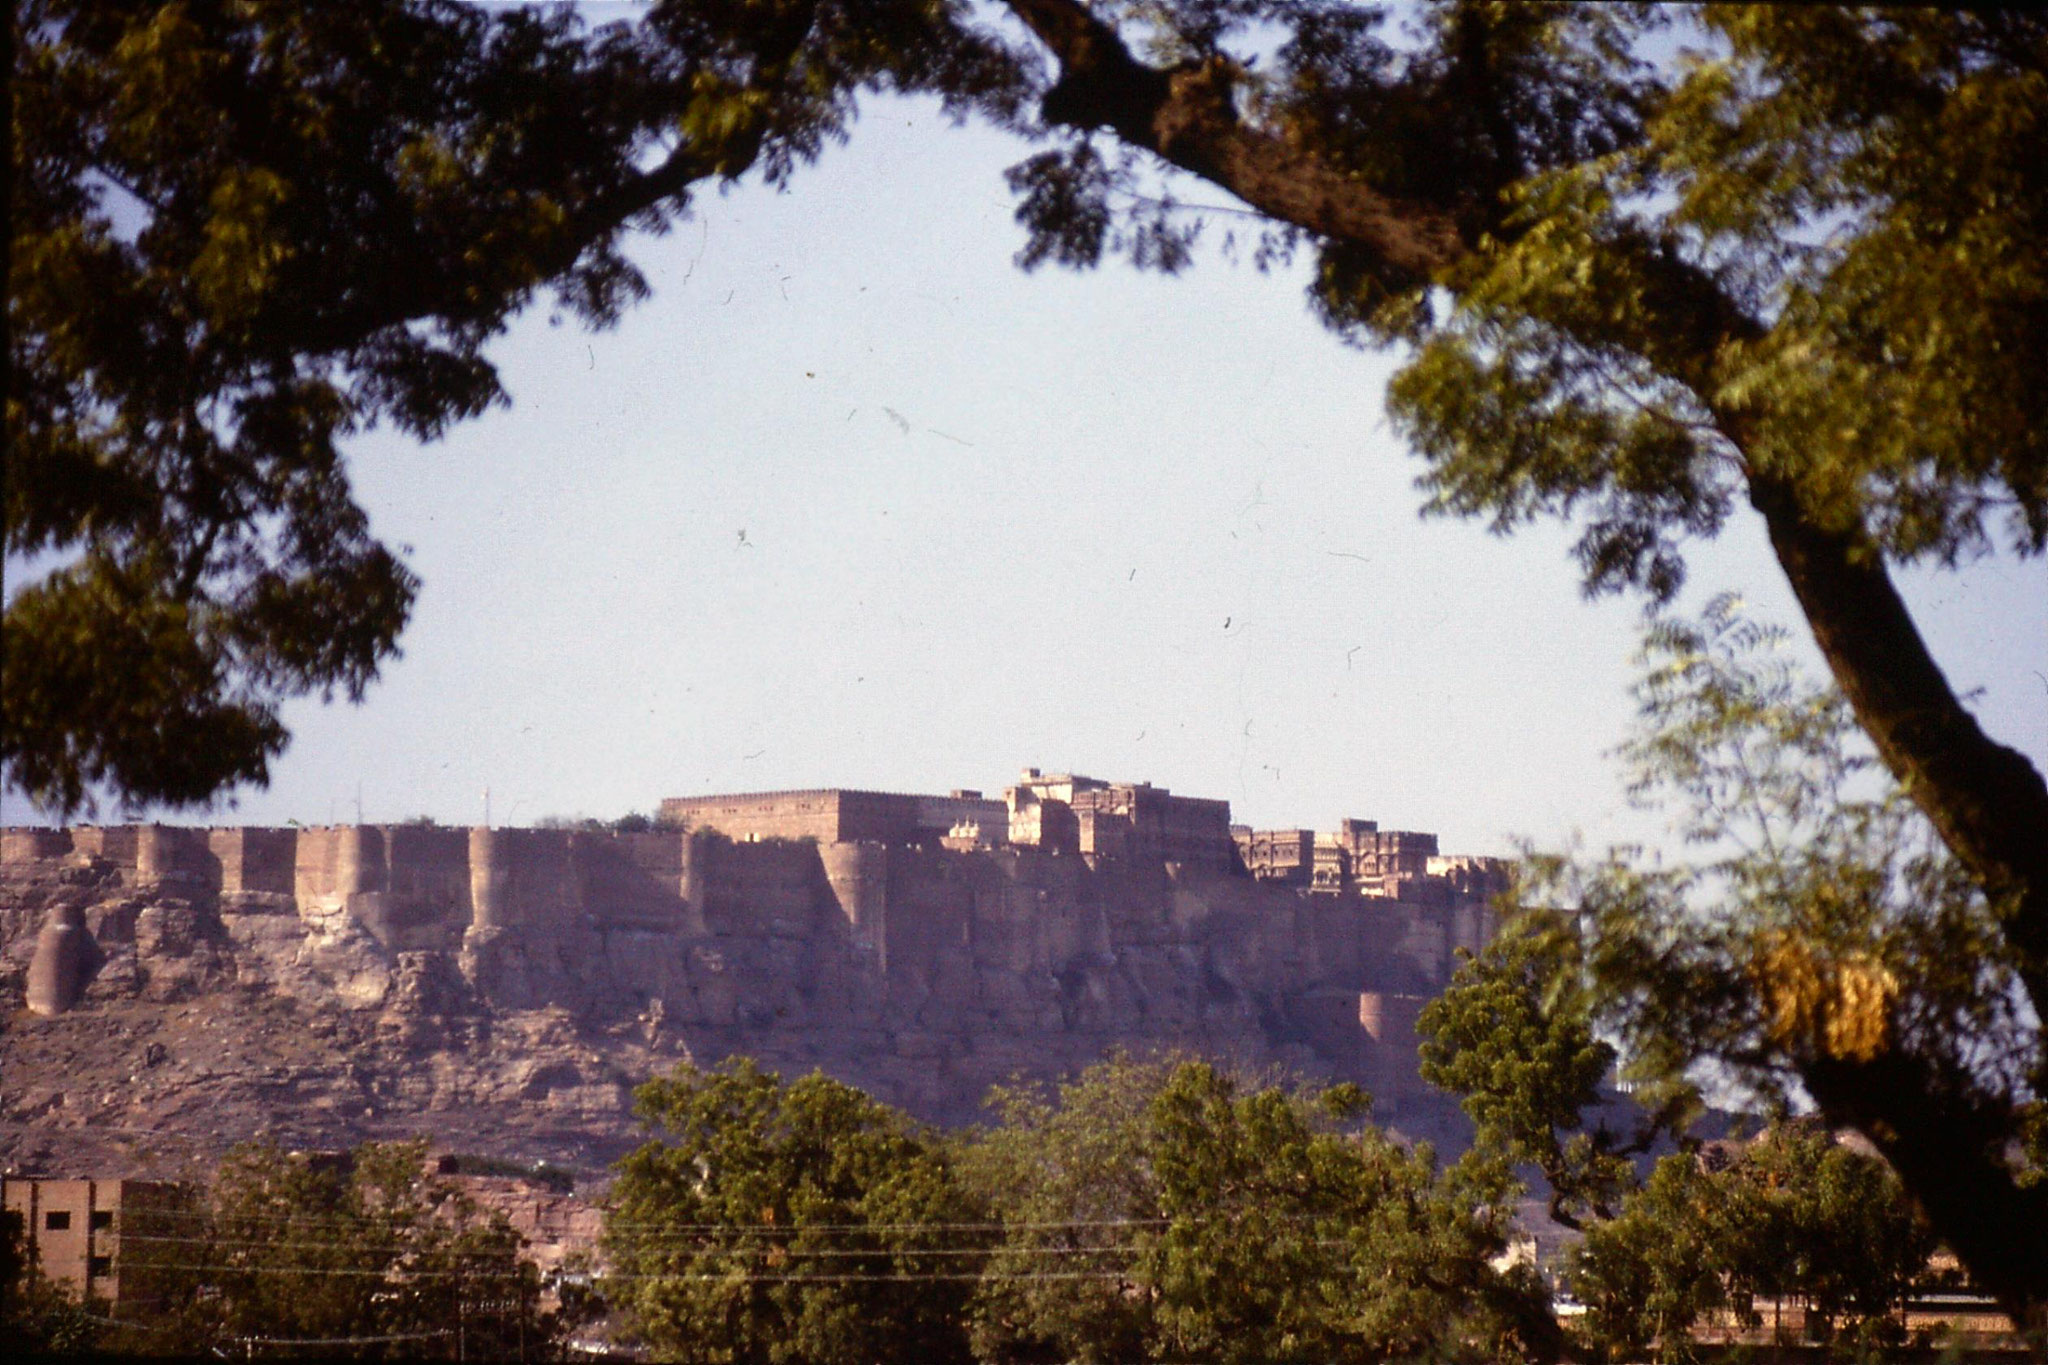 28/11/1989: 27: Jodhpur fort from south